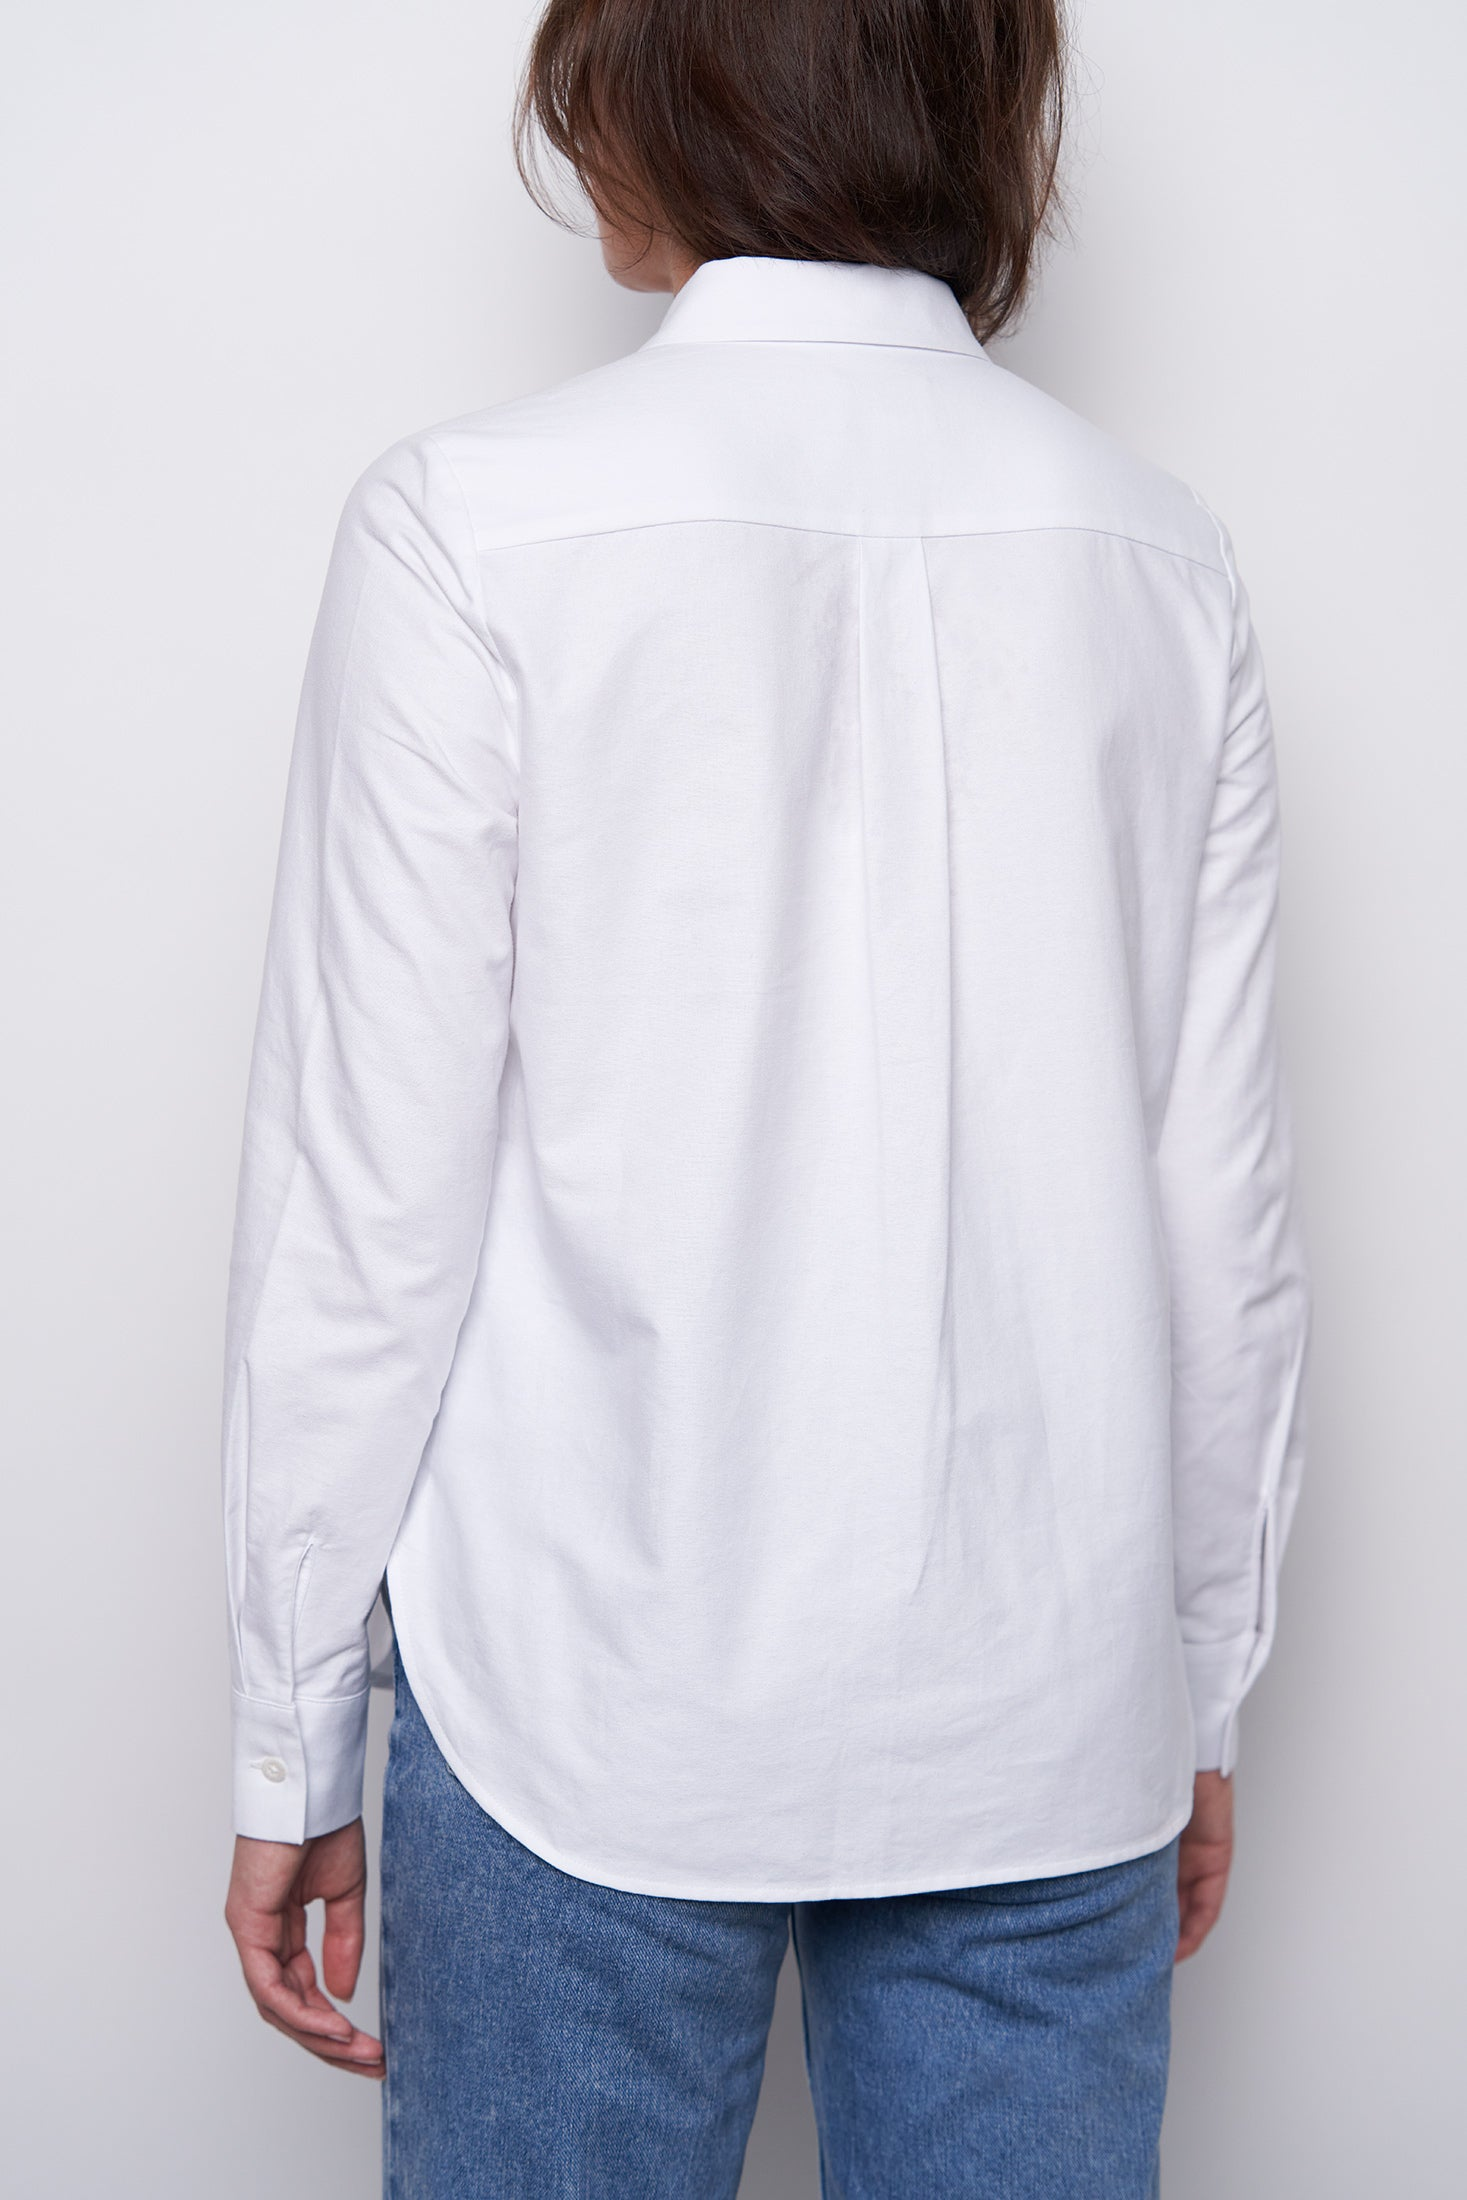 Chaperche Shirt - White-3